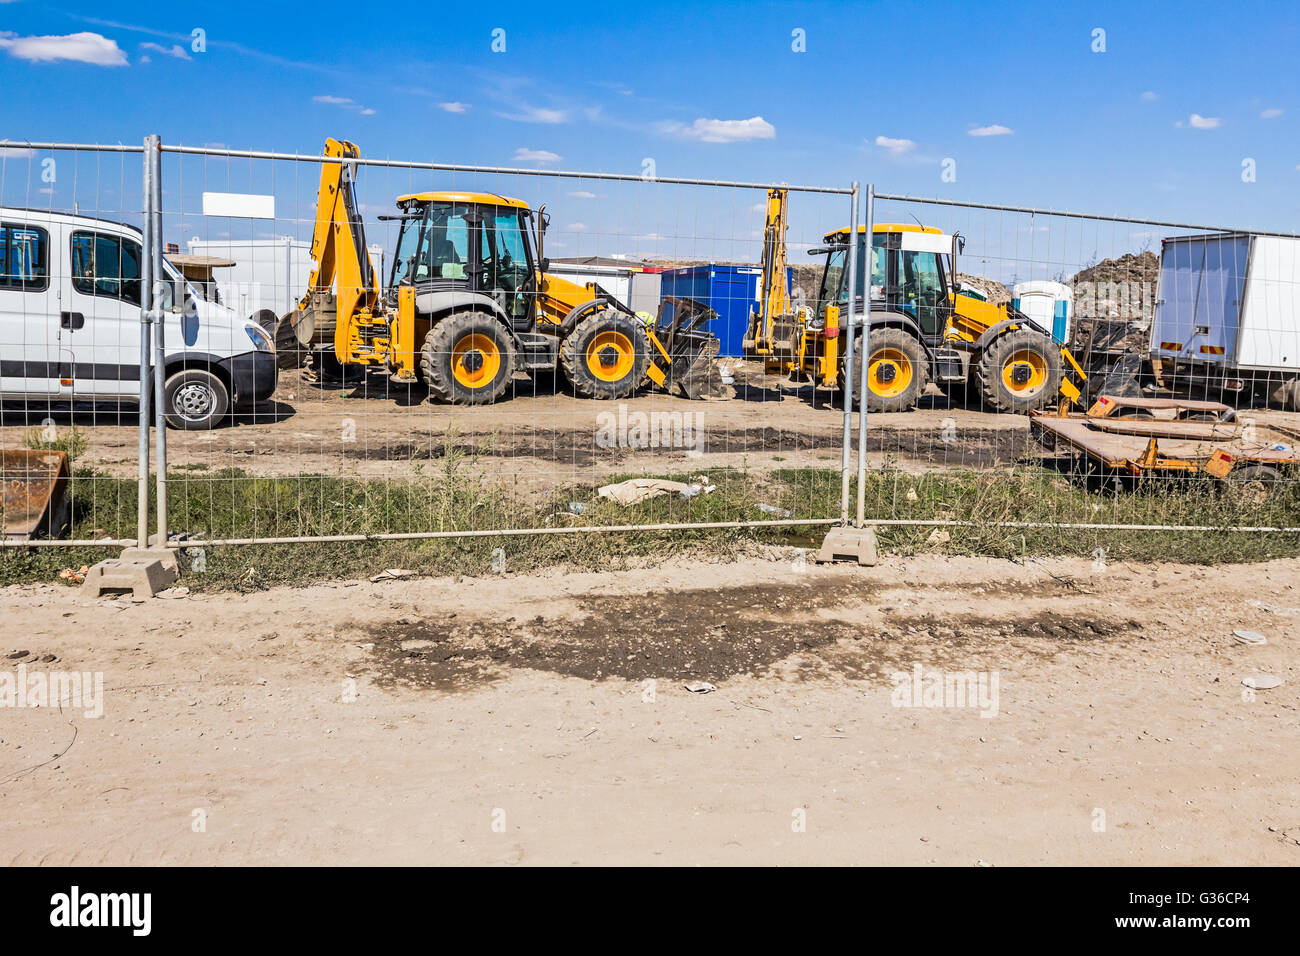 View on few excavators through a fence wire, parked at construction site. - Stock Image